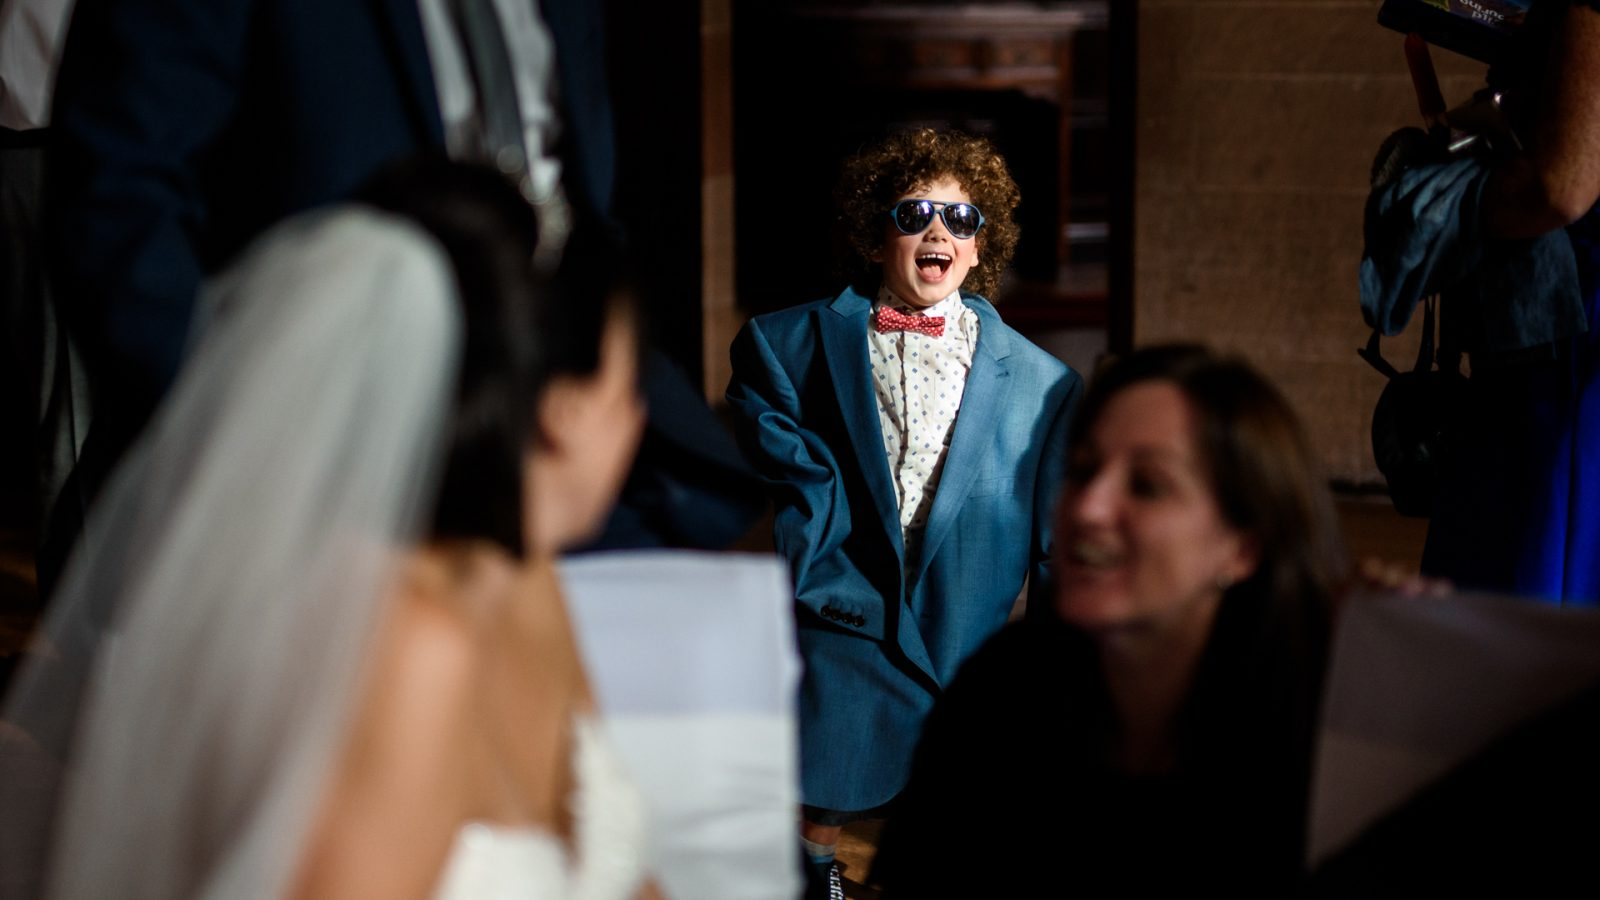 fun_things_for_kids_to_do_at_weddings